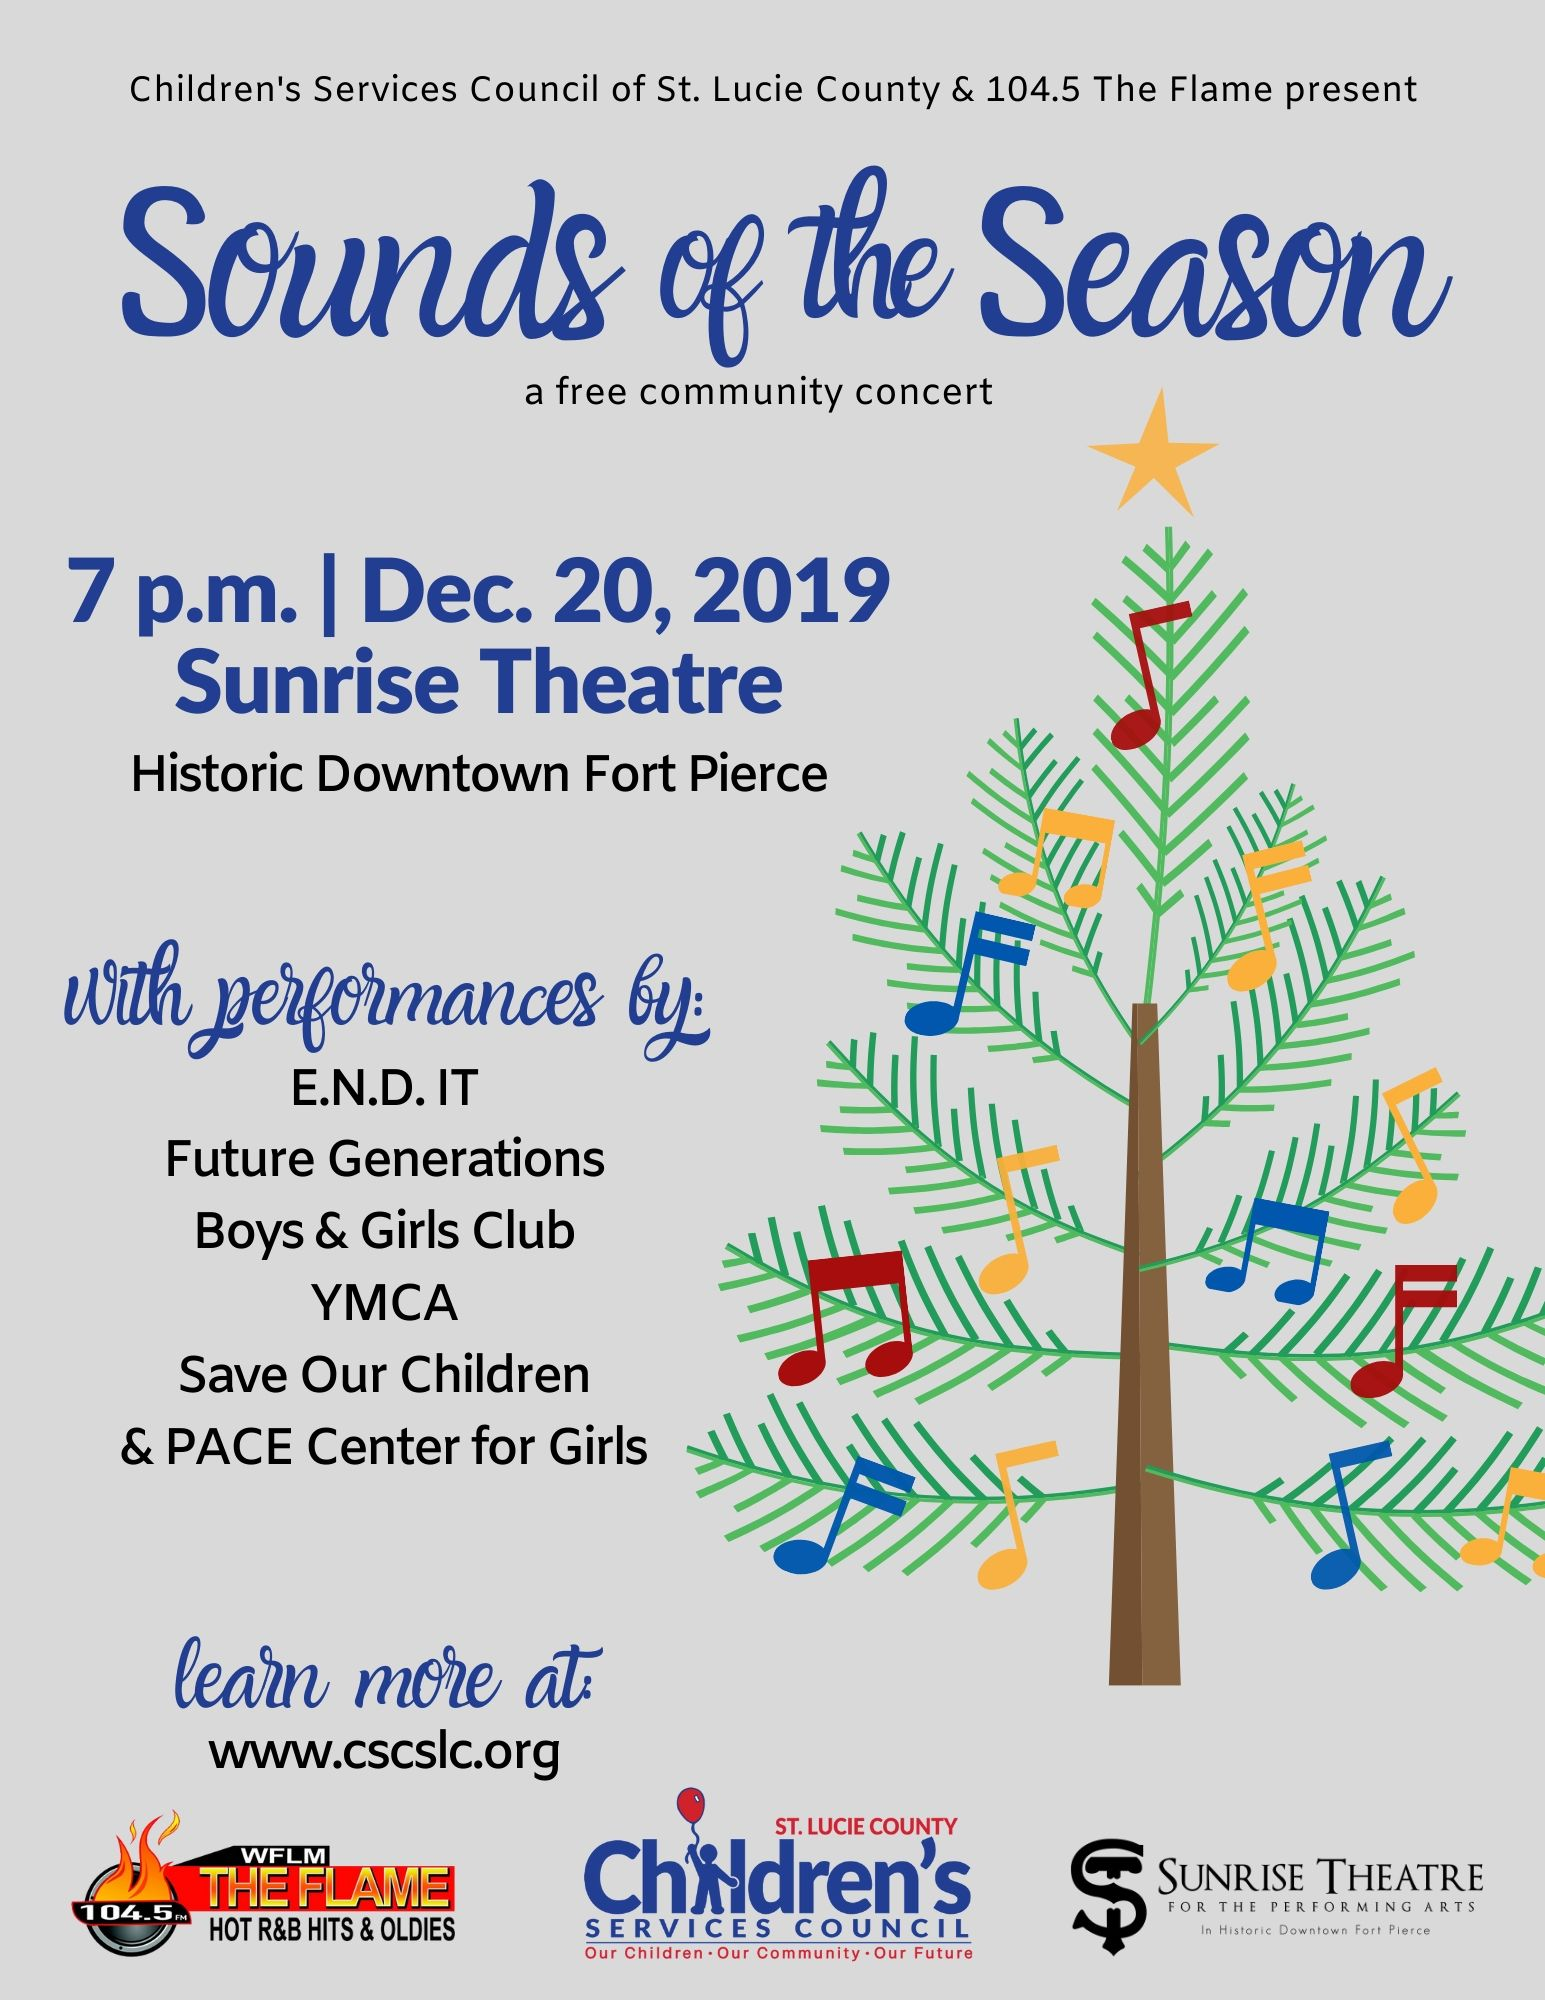 Sounds of the Season- A Free community Concert